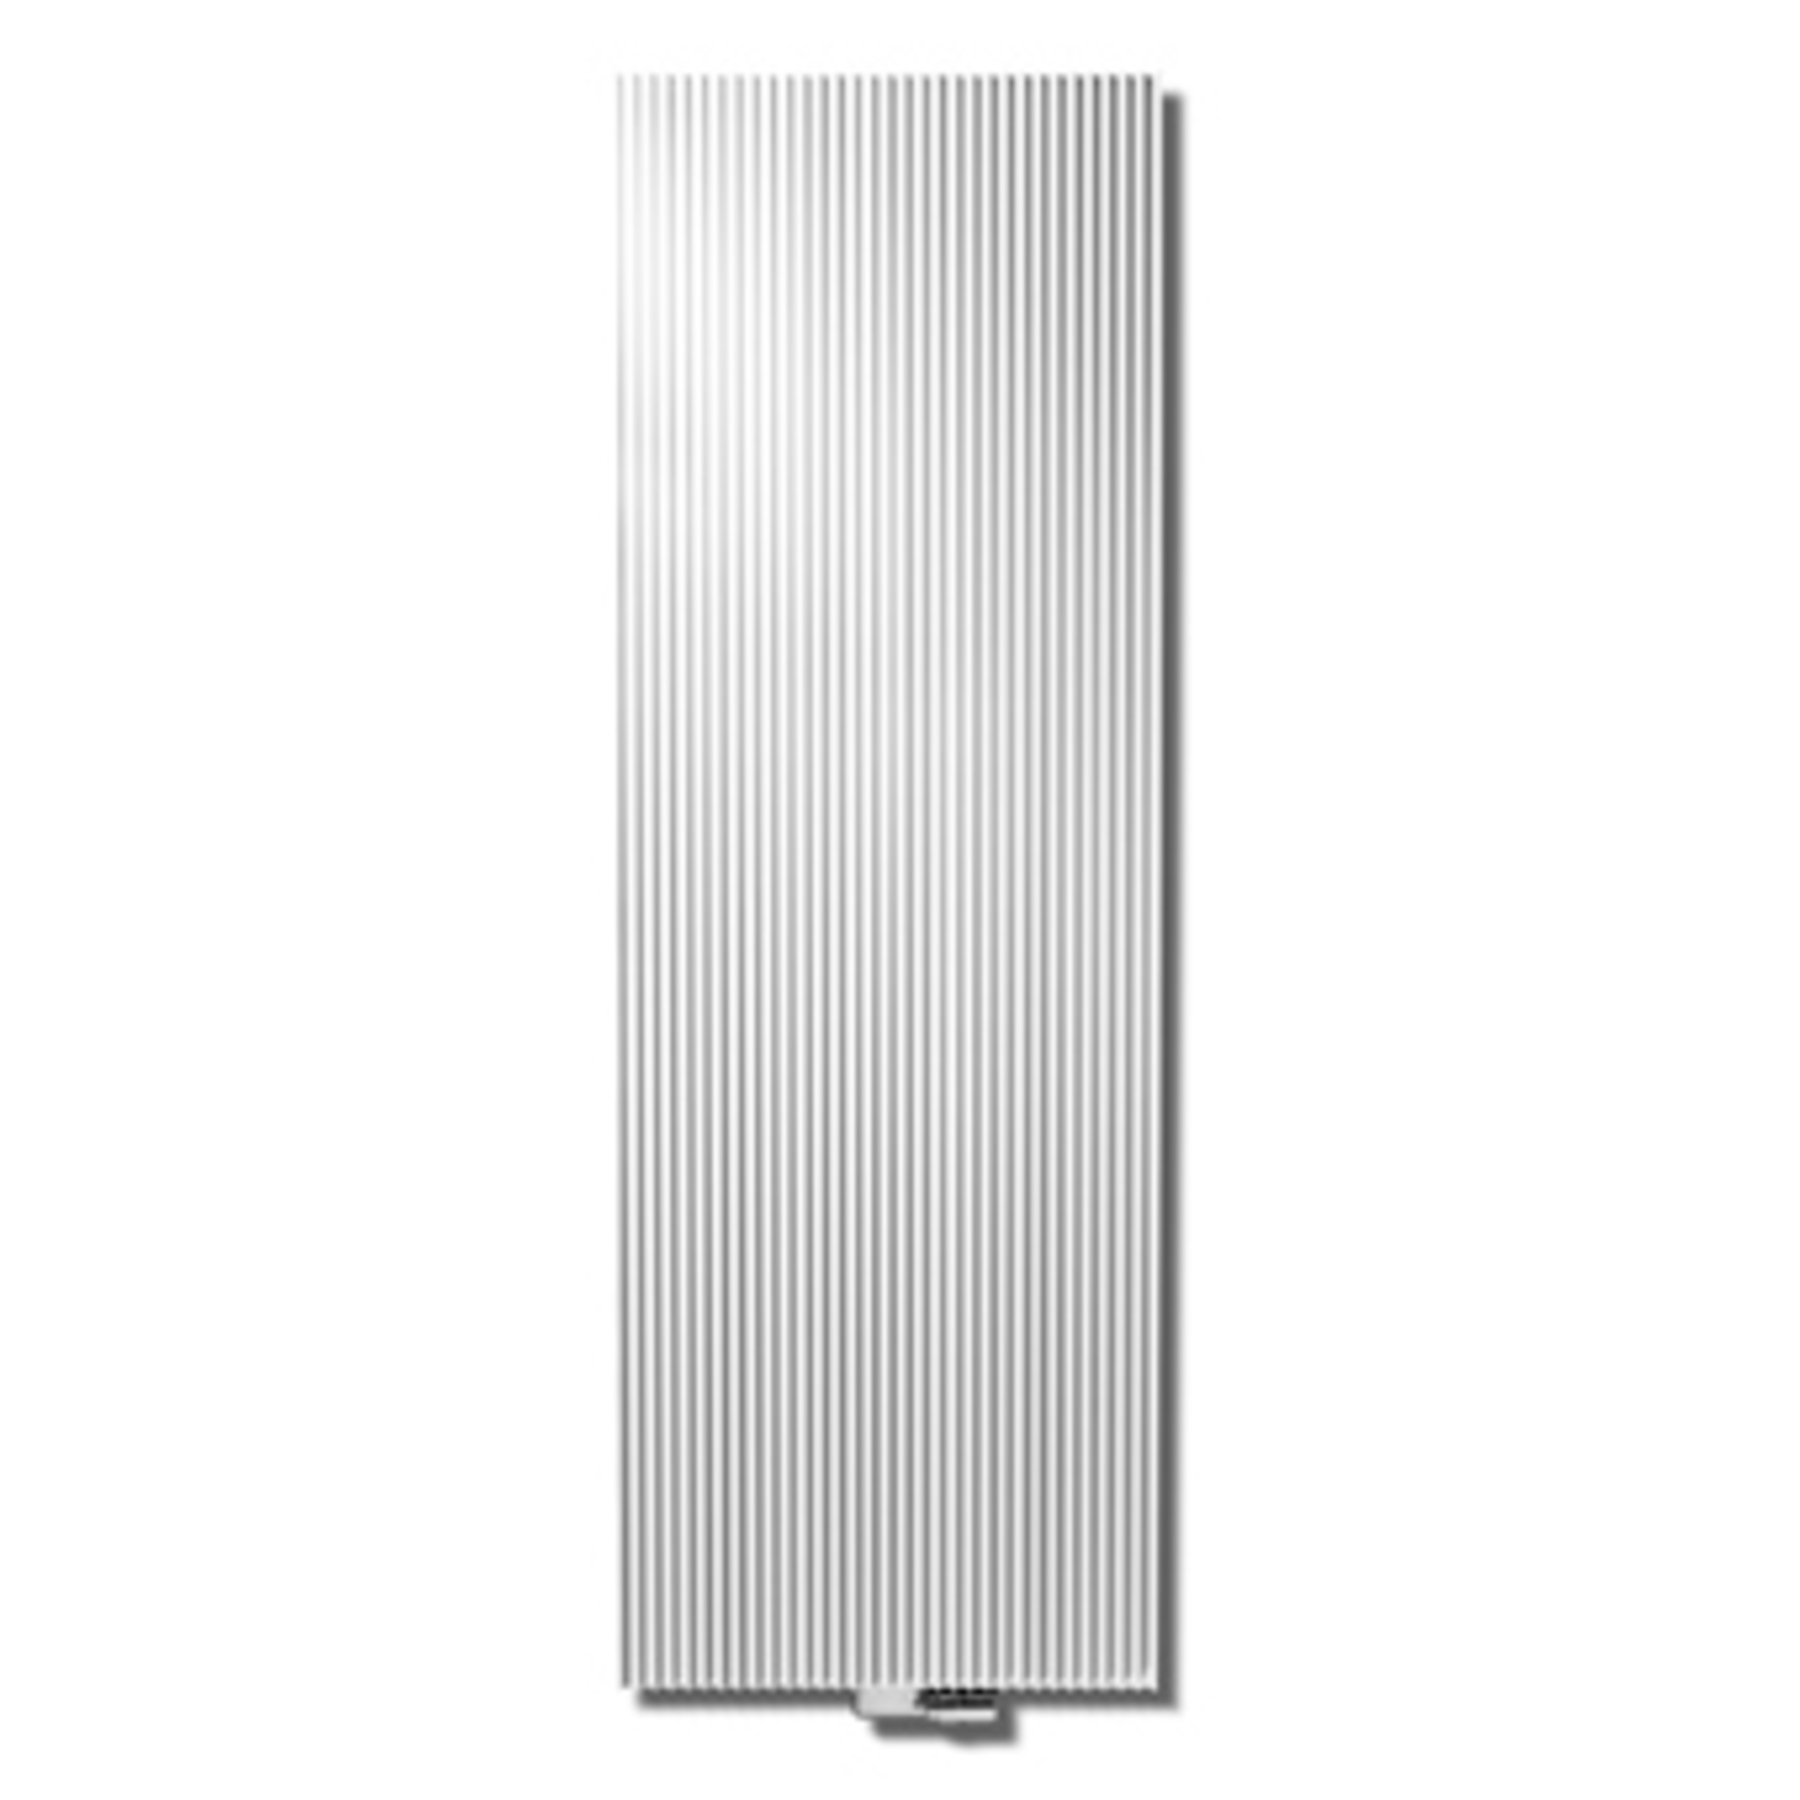 Vasco Canyon designradiator verticaal 1600x455mm 1448 watt aansluiting 66 zand (N503)